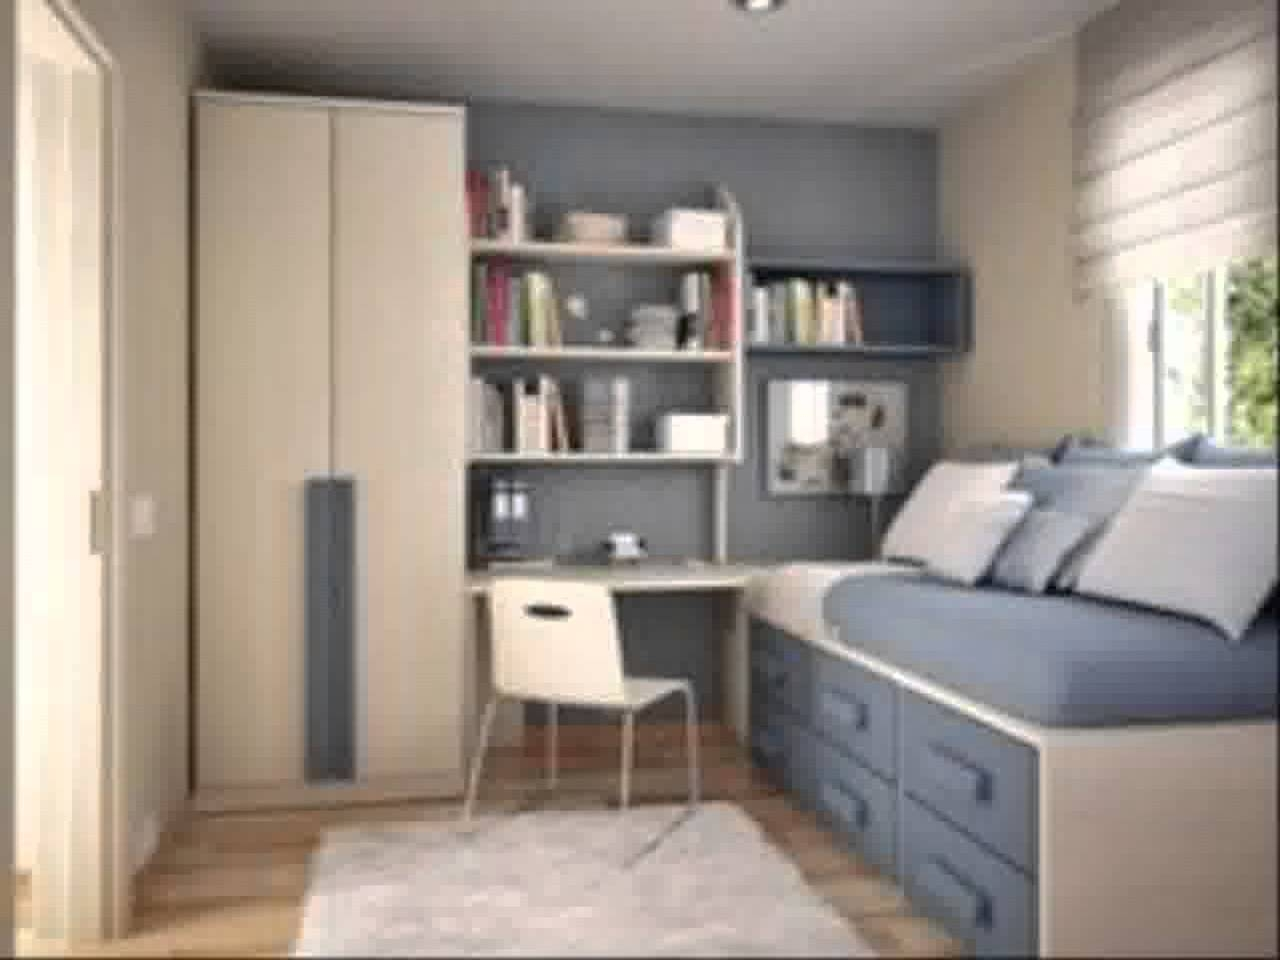 Bedroom Cabinets Image Via Wwwolxin Interior Bedroom Furniture Intended For Study Cupboard Designs (#1 of 15)